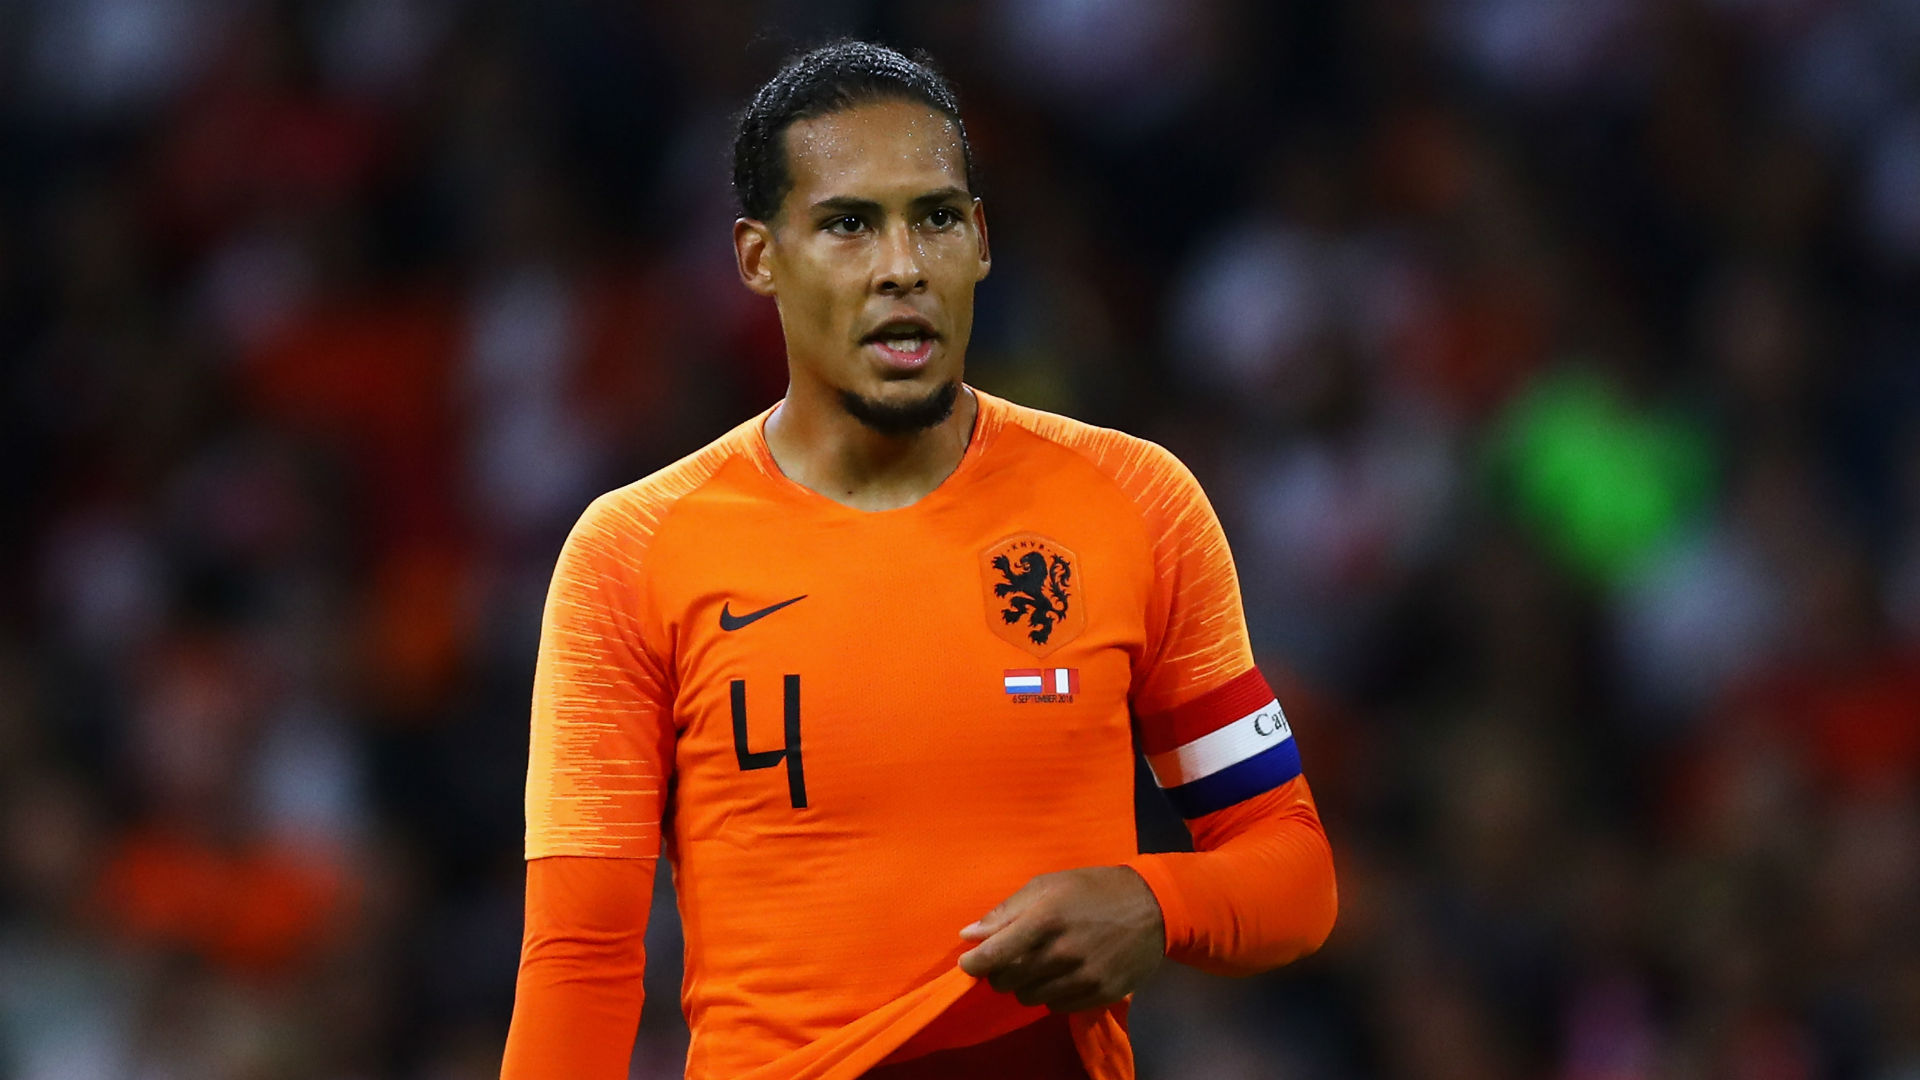 Depay, Van Dijk lead Netherlands past struggling Germany in Nations League